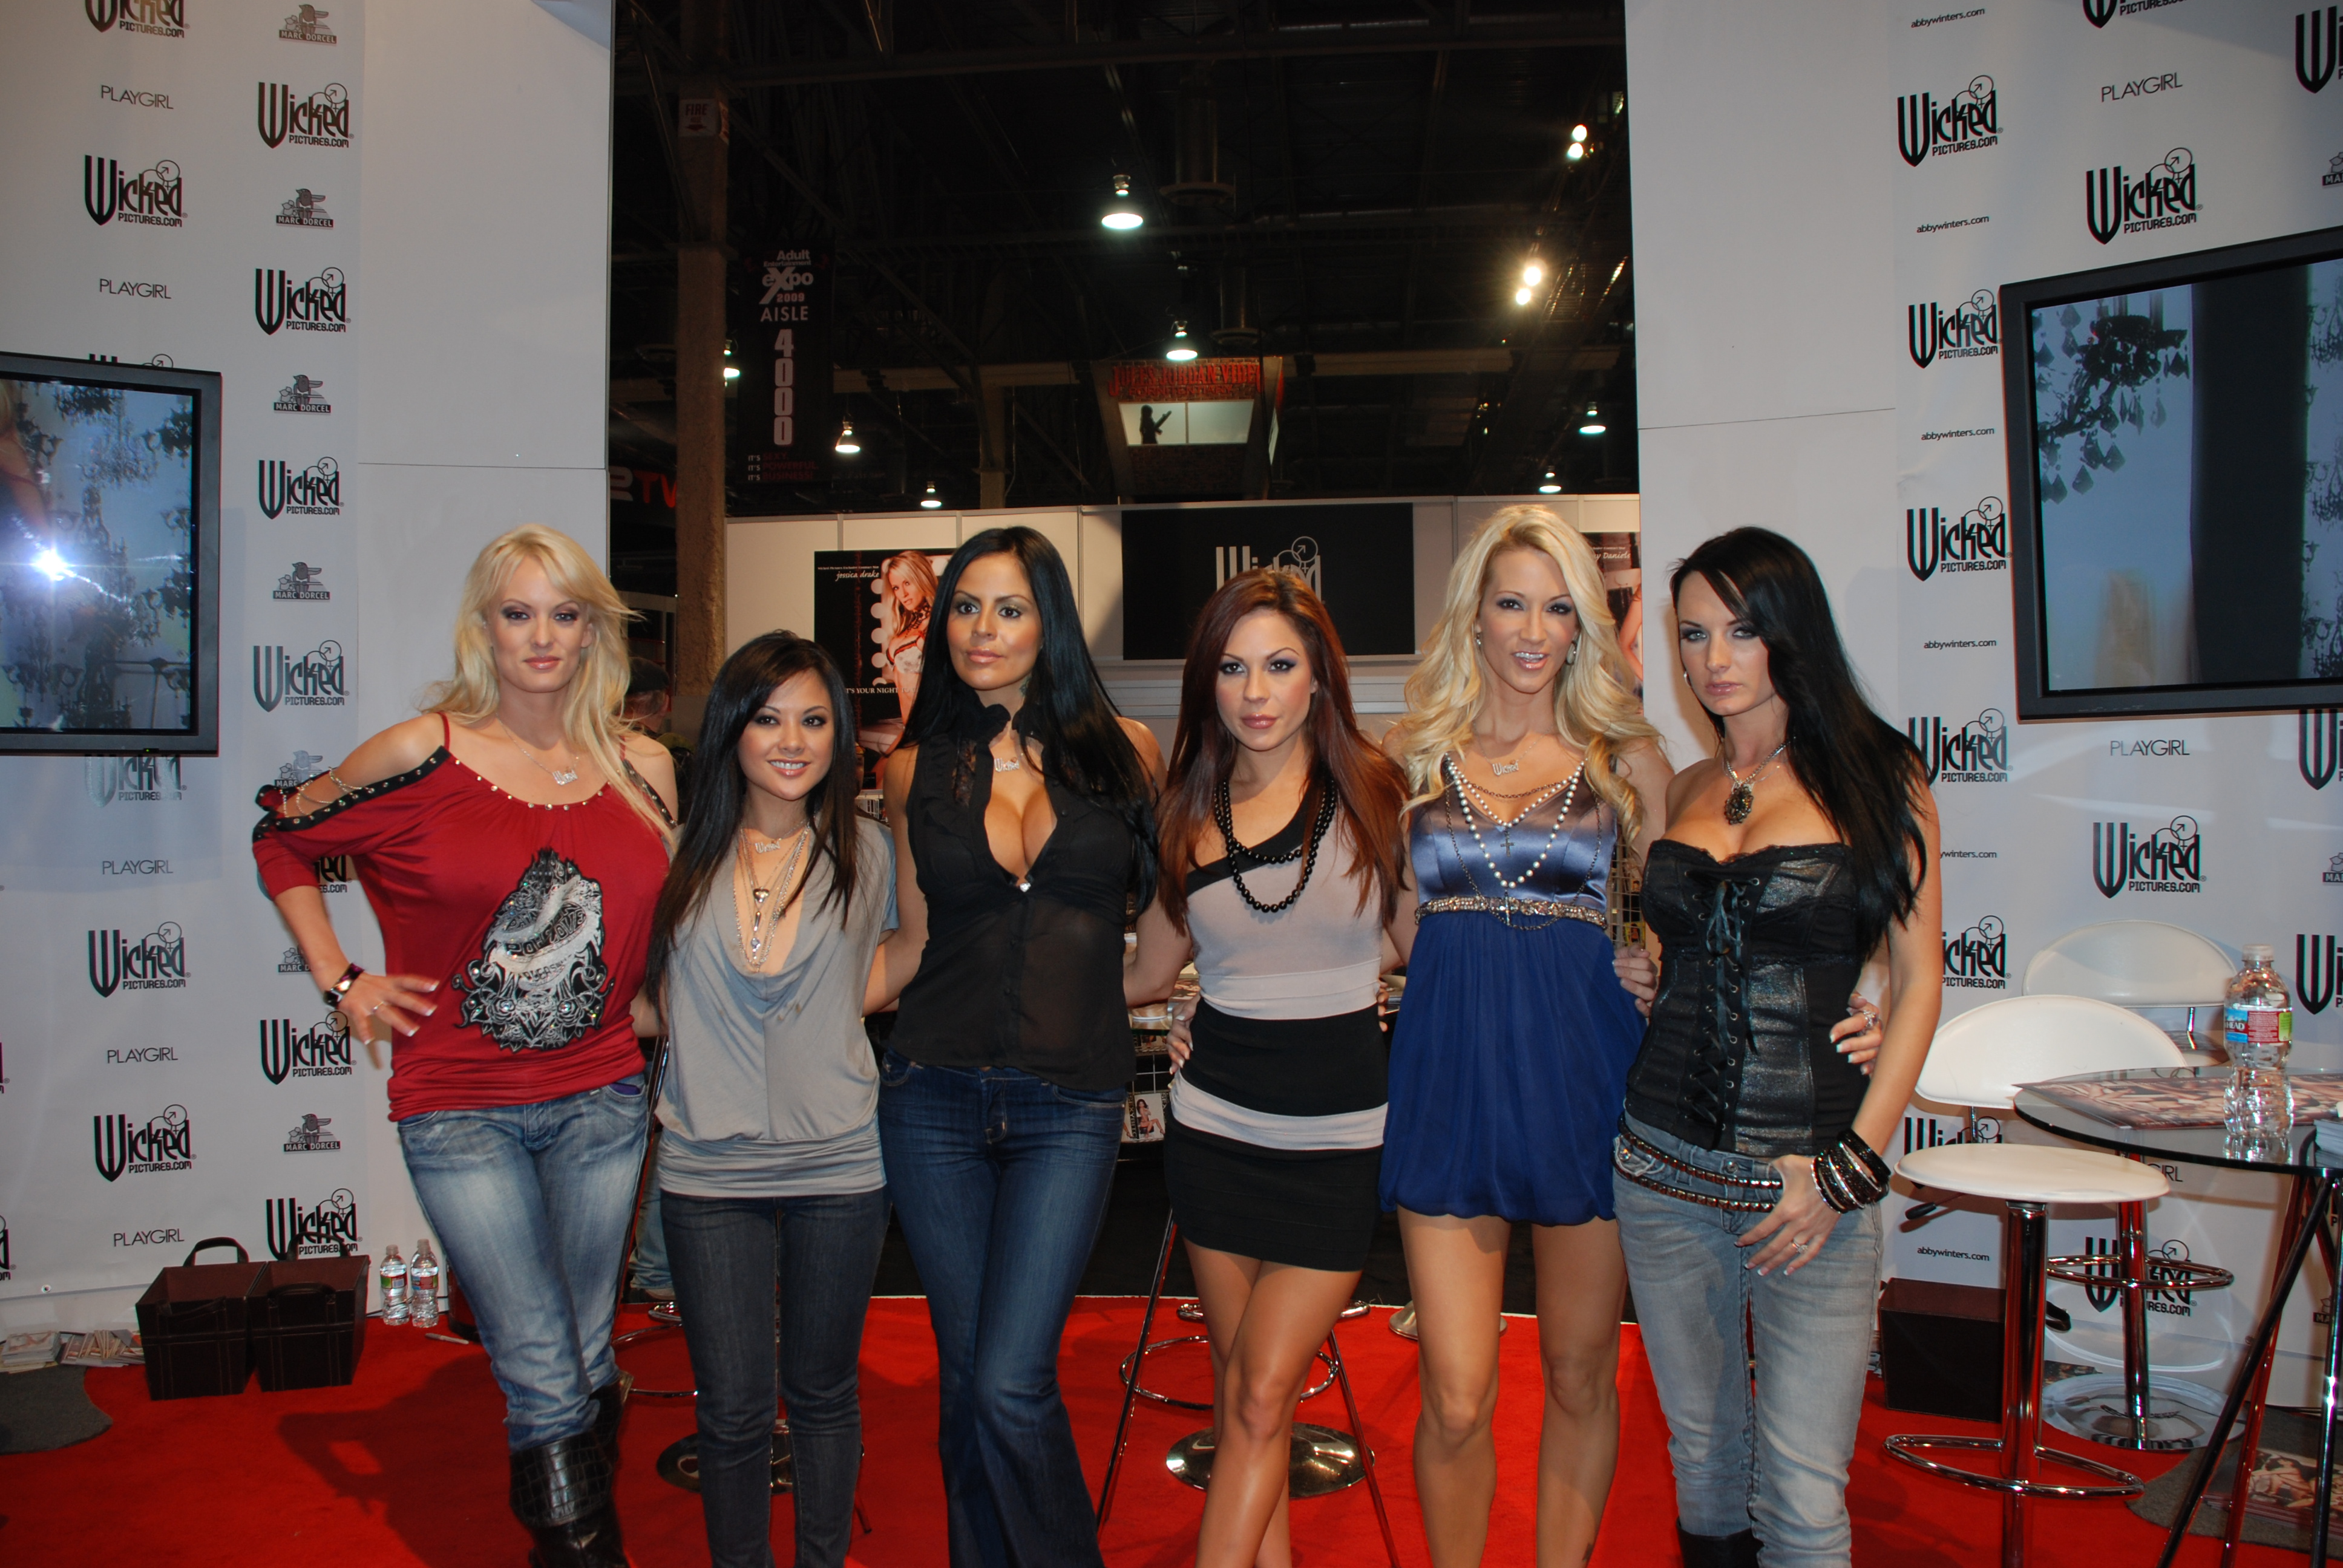 Filewicked Girls At Avn Adult Entertainment Expo 2009 Jpg